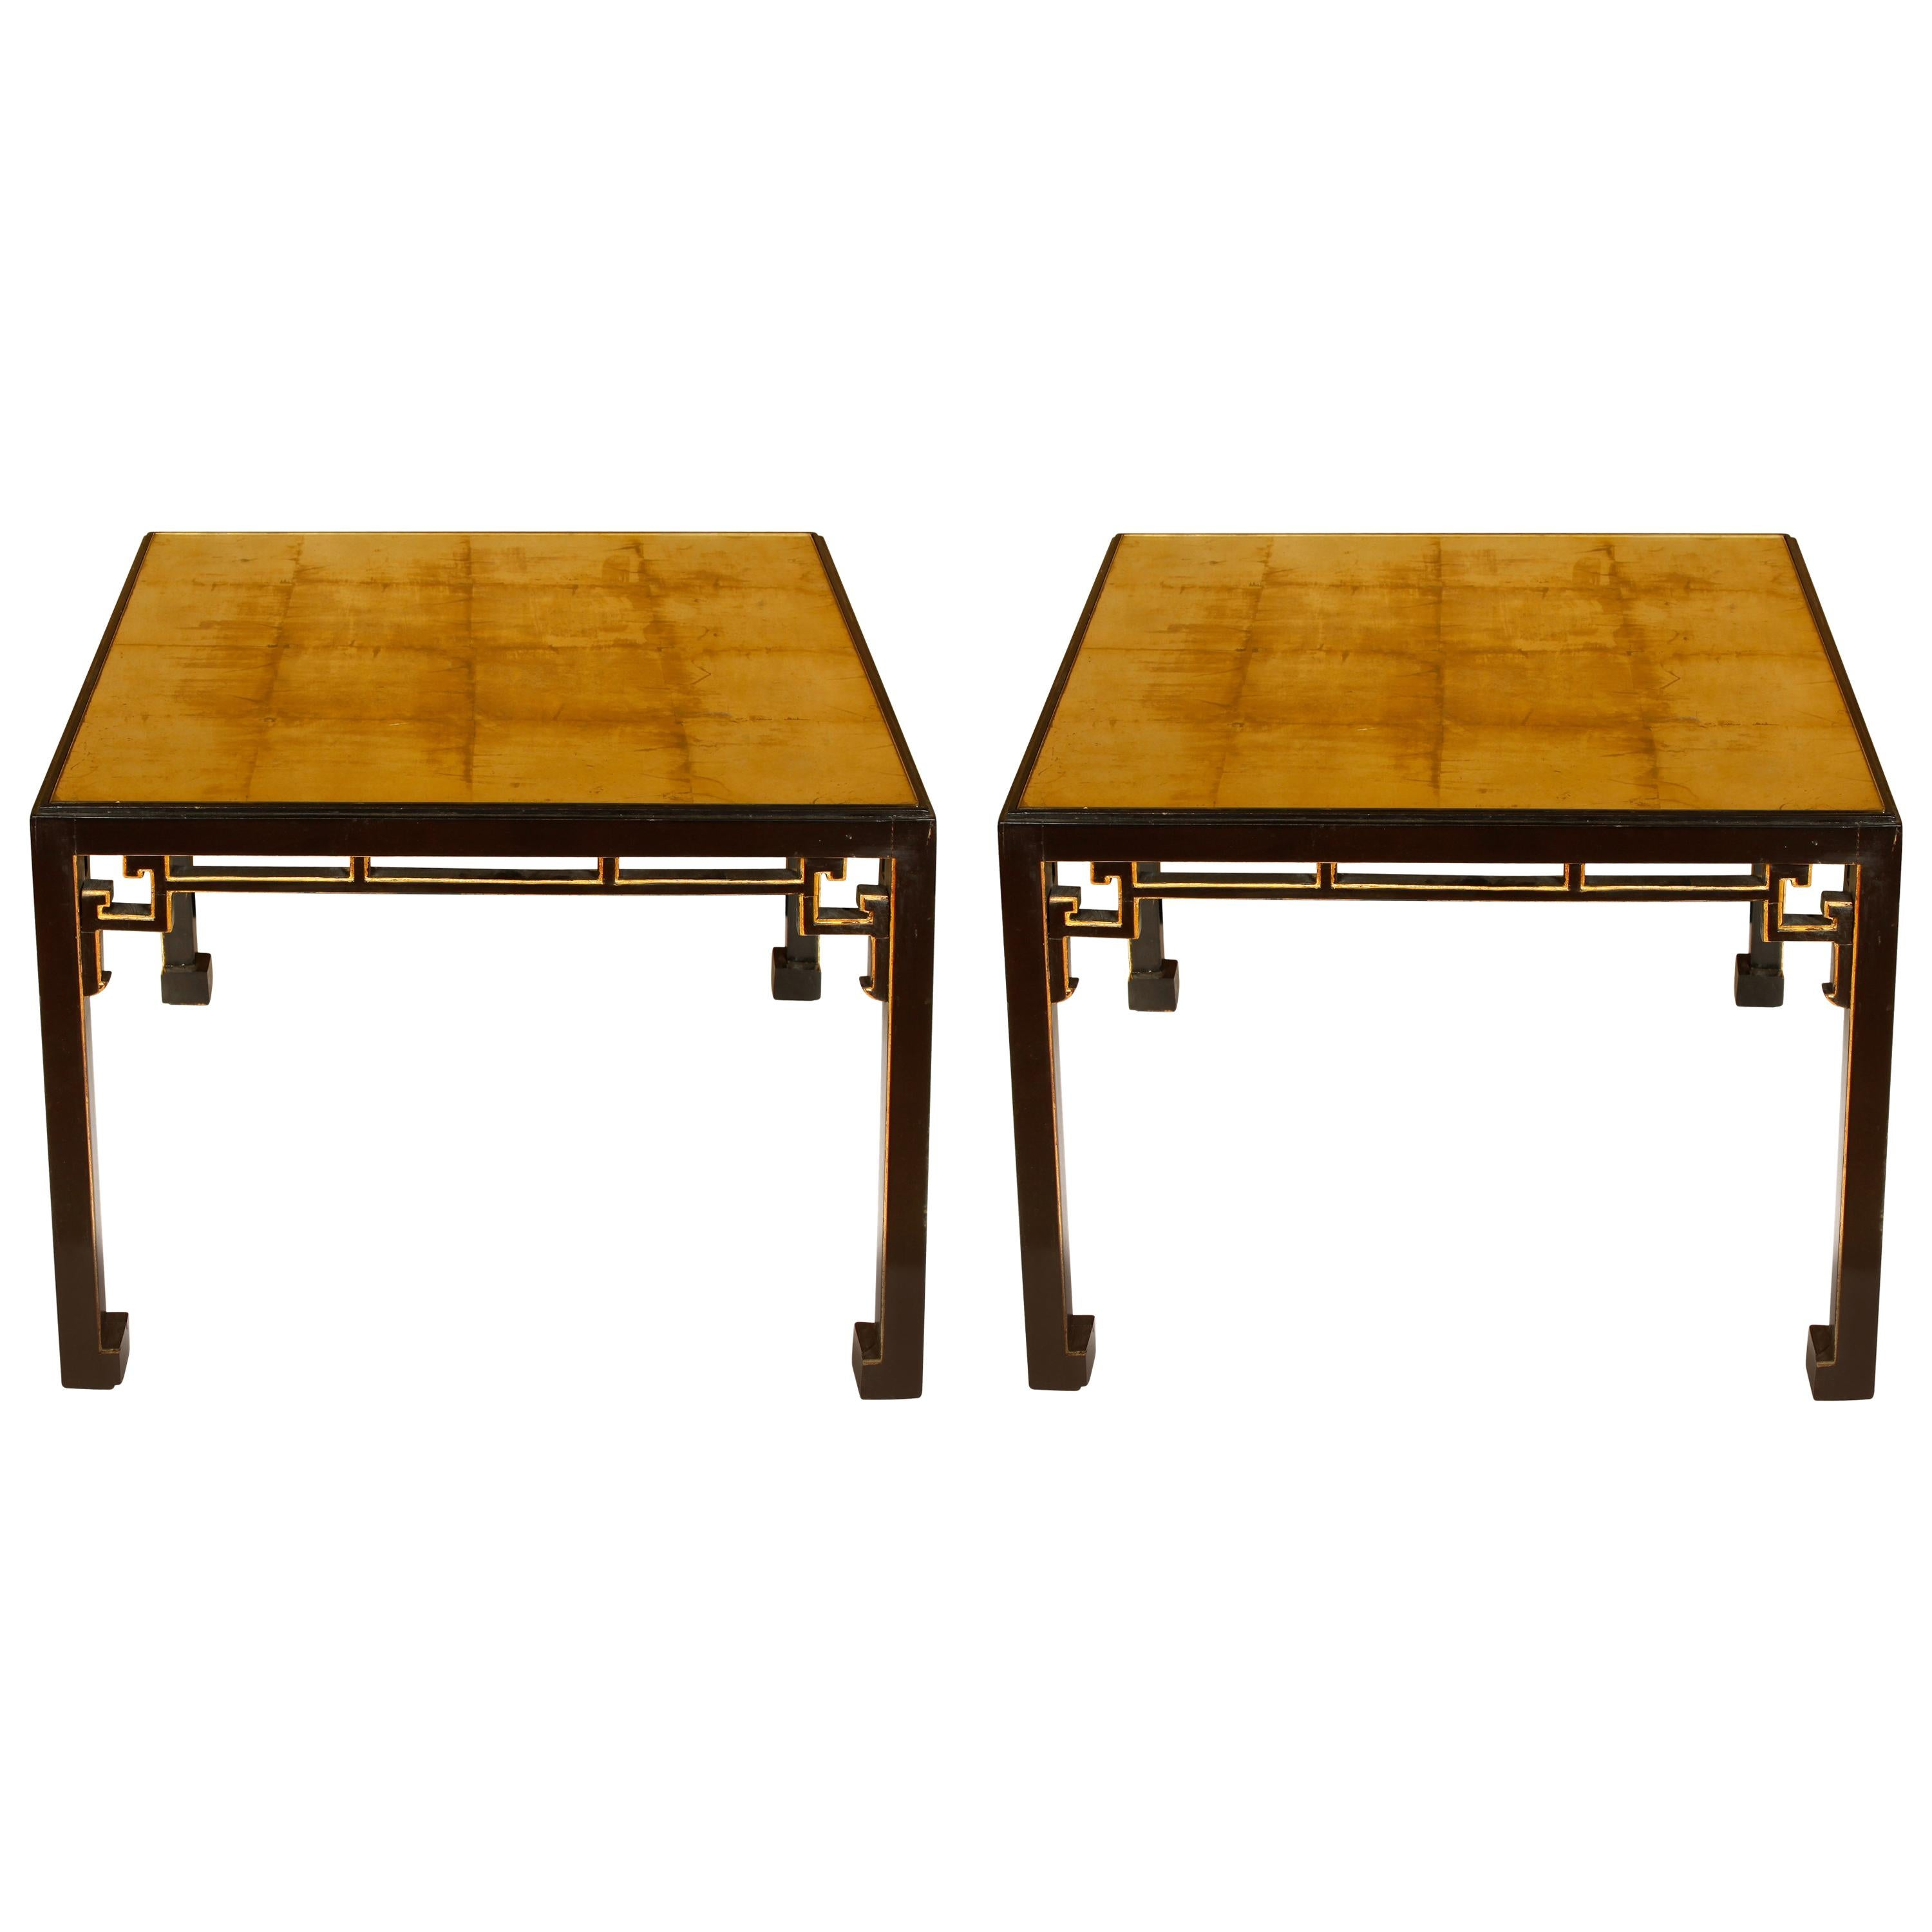 Pair of Gilt and Antiqued Mirror Top Side Tables in the Style of James Mont